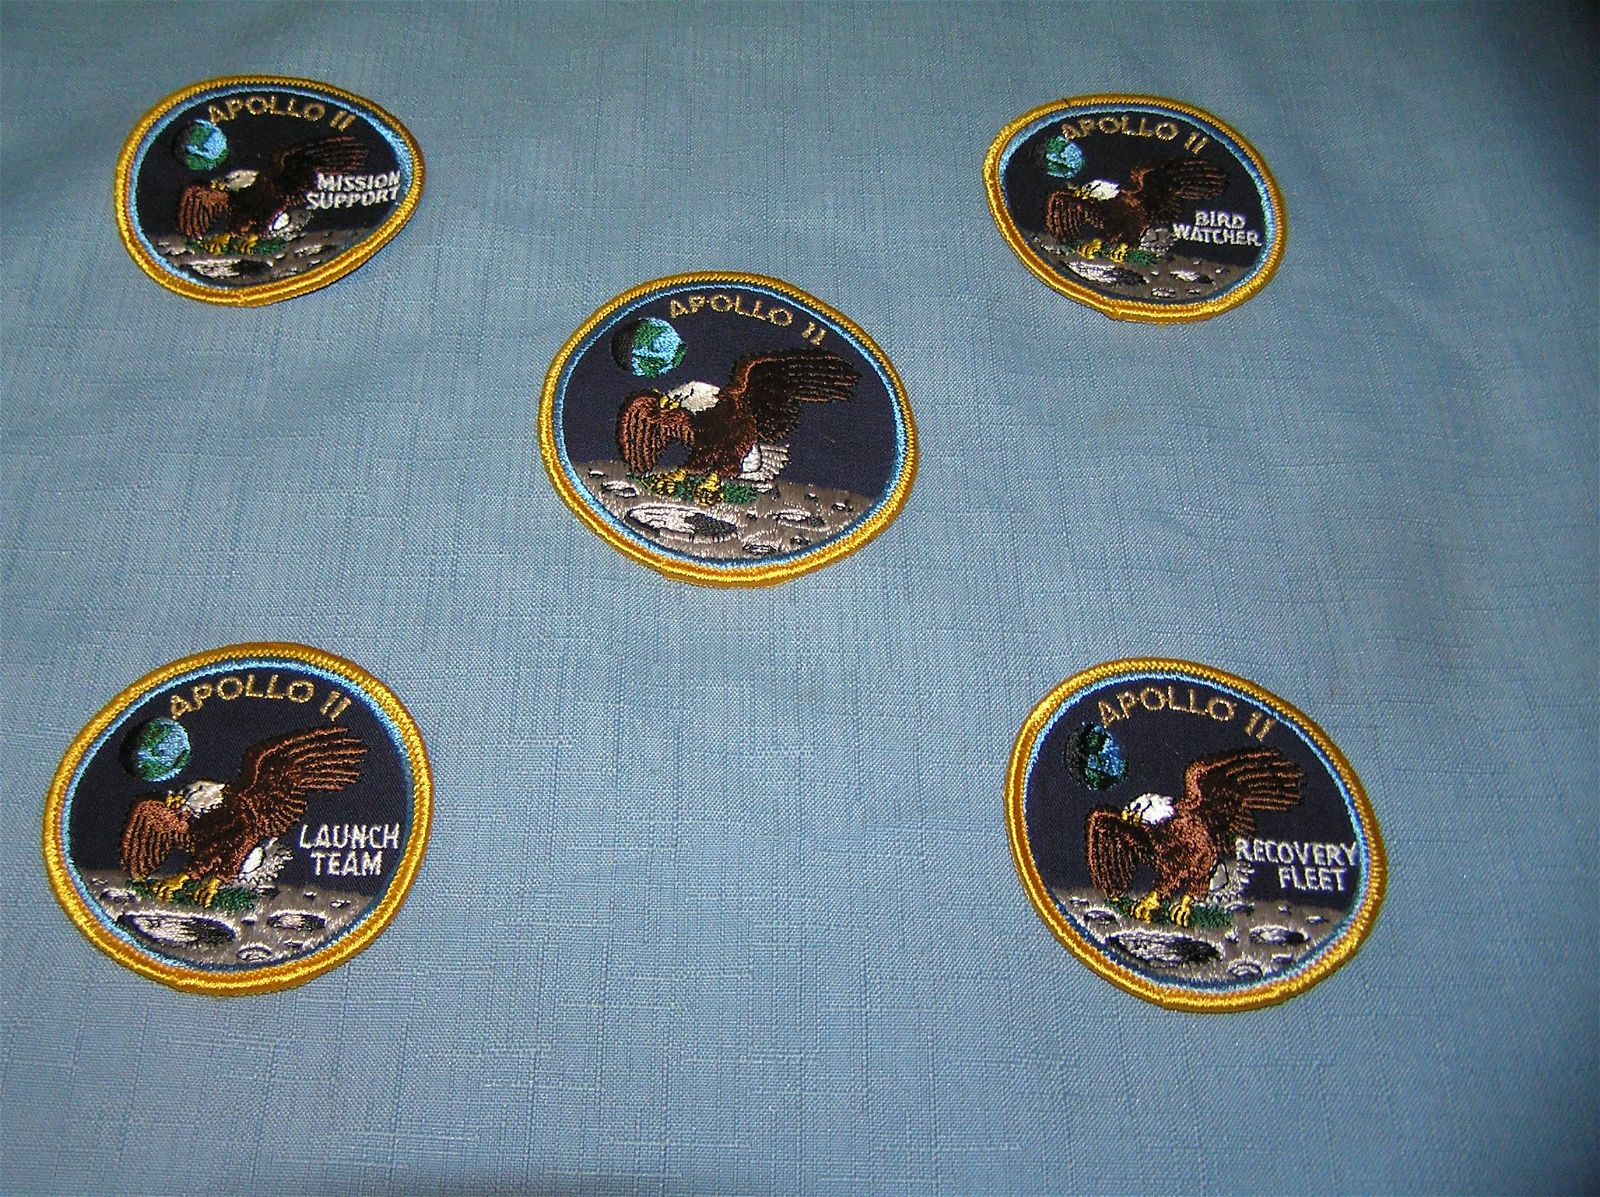 Apollo 11 first man on the moon patches